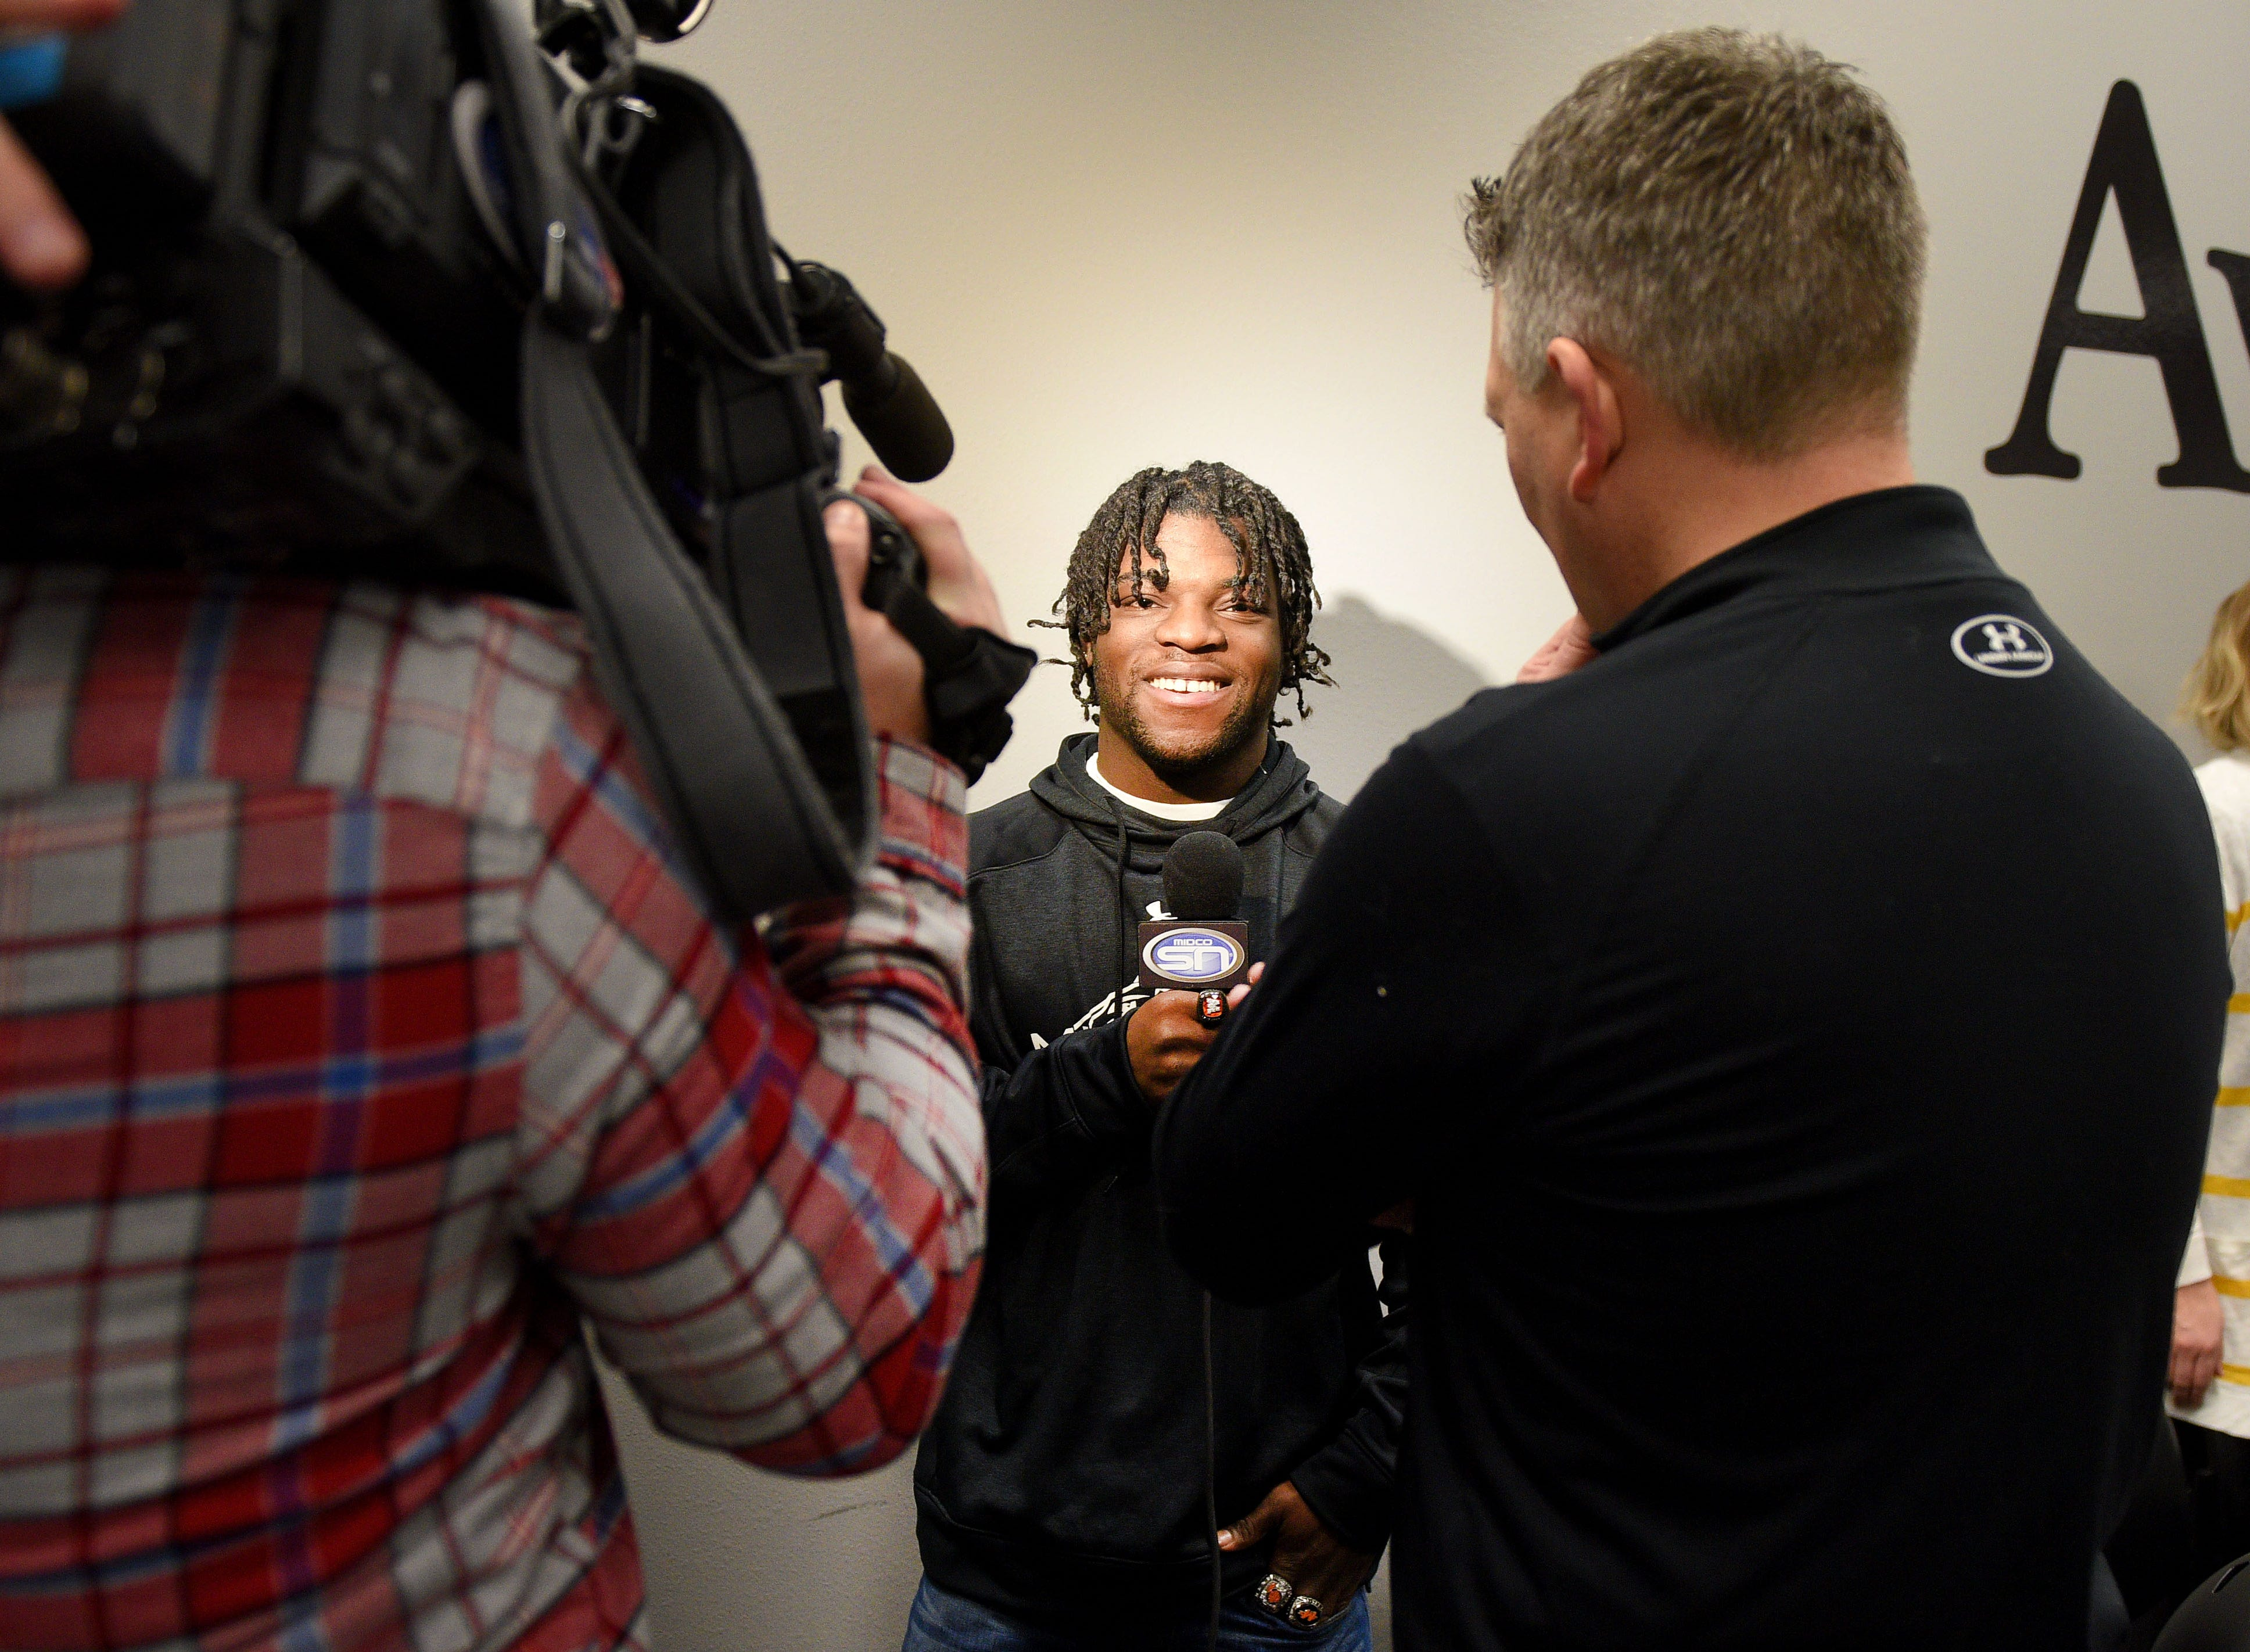 Washington's Tupak Kpeayeh gives interviews during signing day Wednesday, Feb. 6, at Avera Sports Institute in Sioux Falls. Kpeayeh singed a National Letter of Intent to play football at Morningside College.